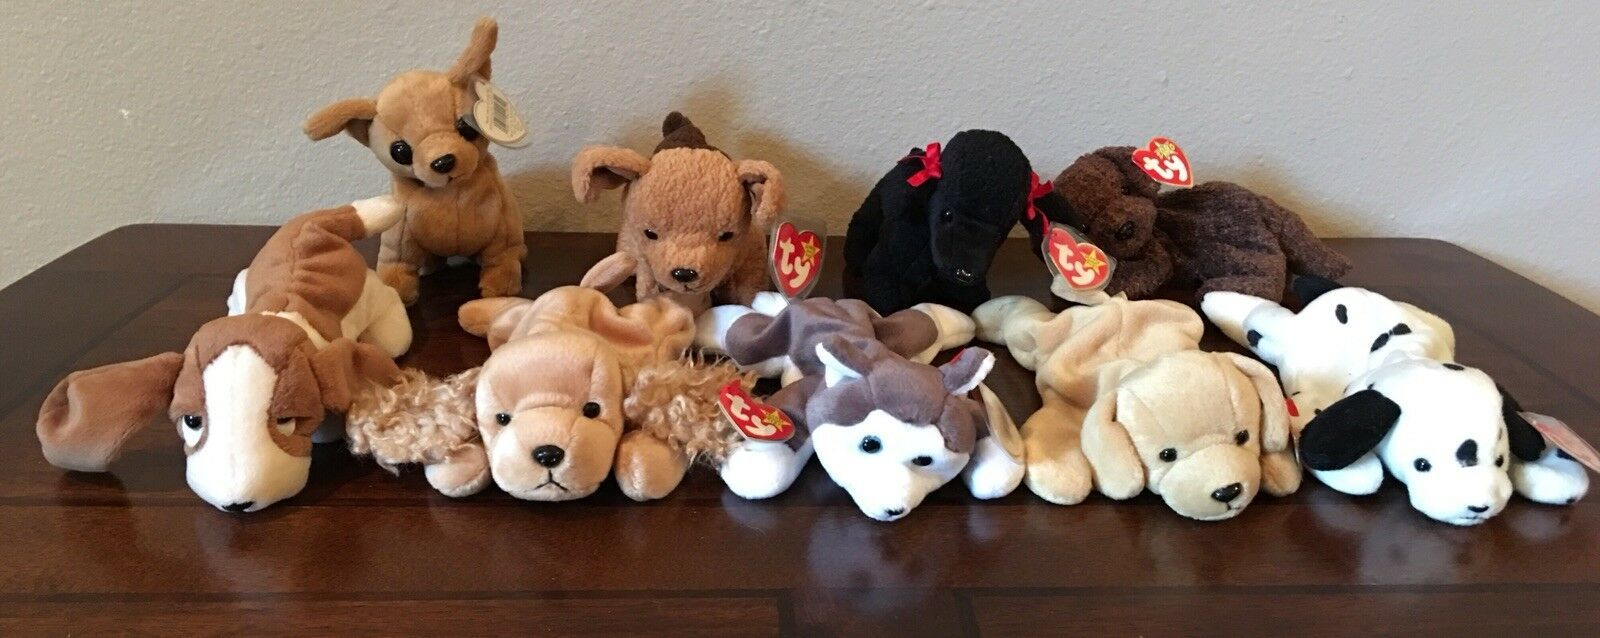 Lot Of 9 Ty Beanie Babies Plush Dogs Excellent Condition